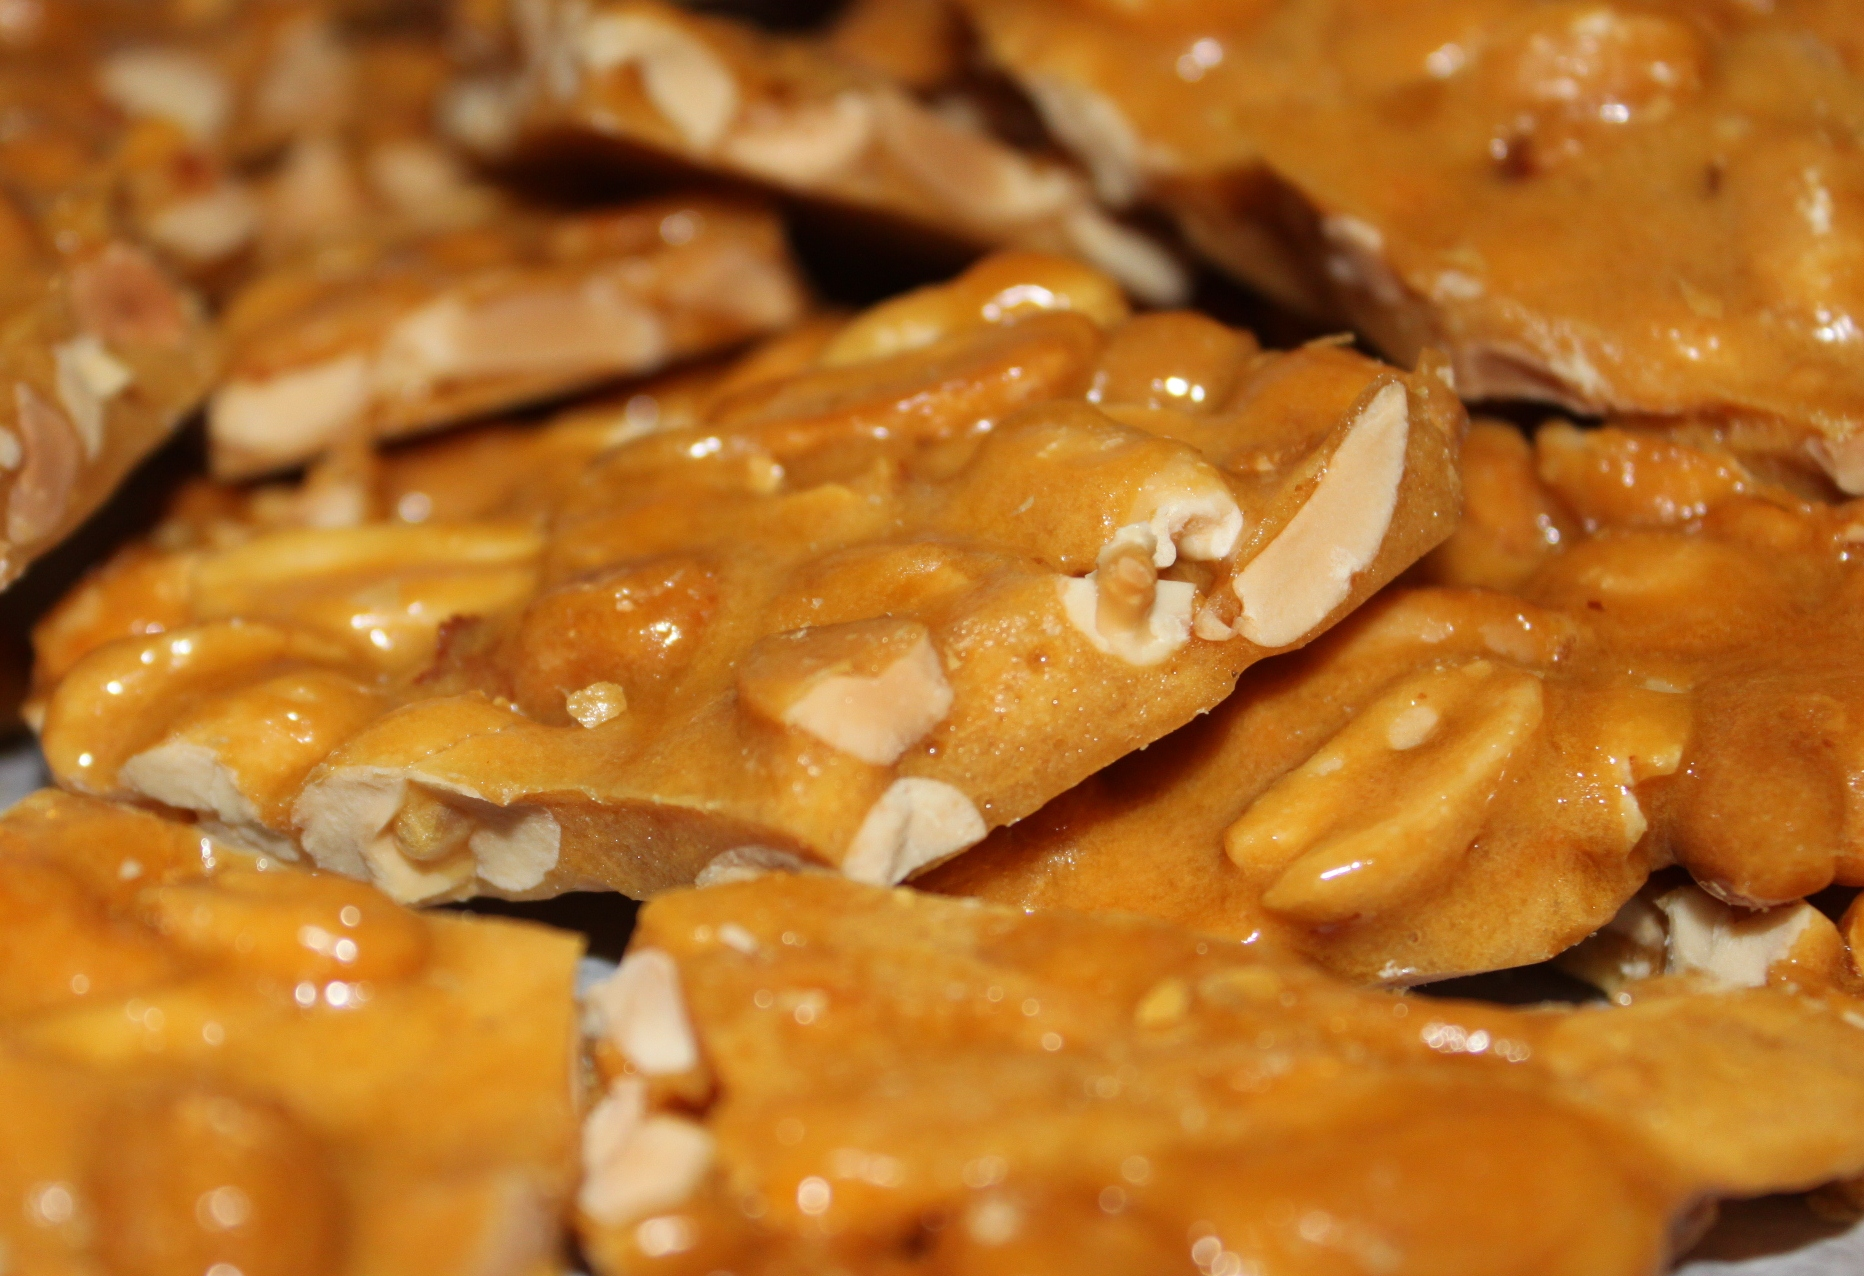 peanut brittle | Old World Garden Farms